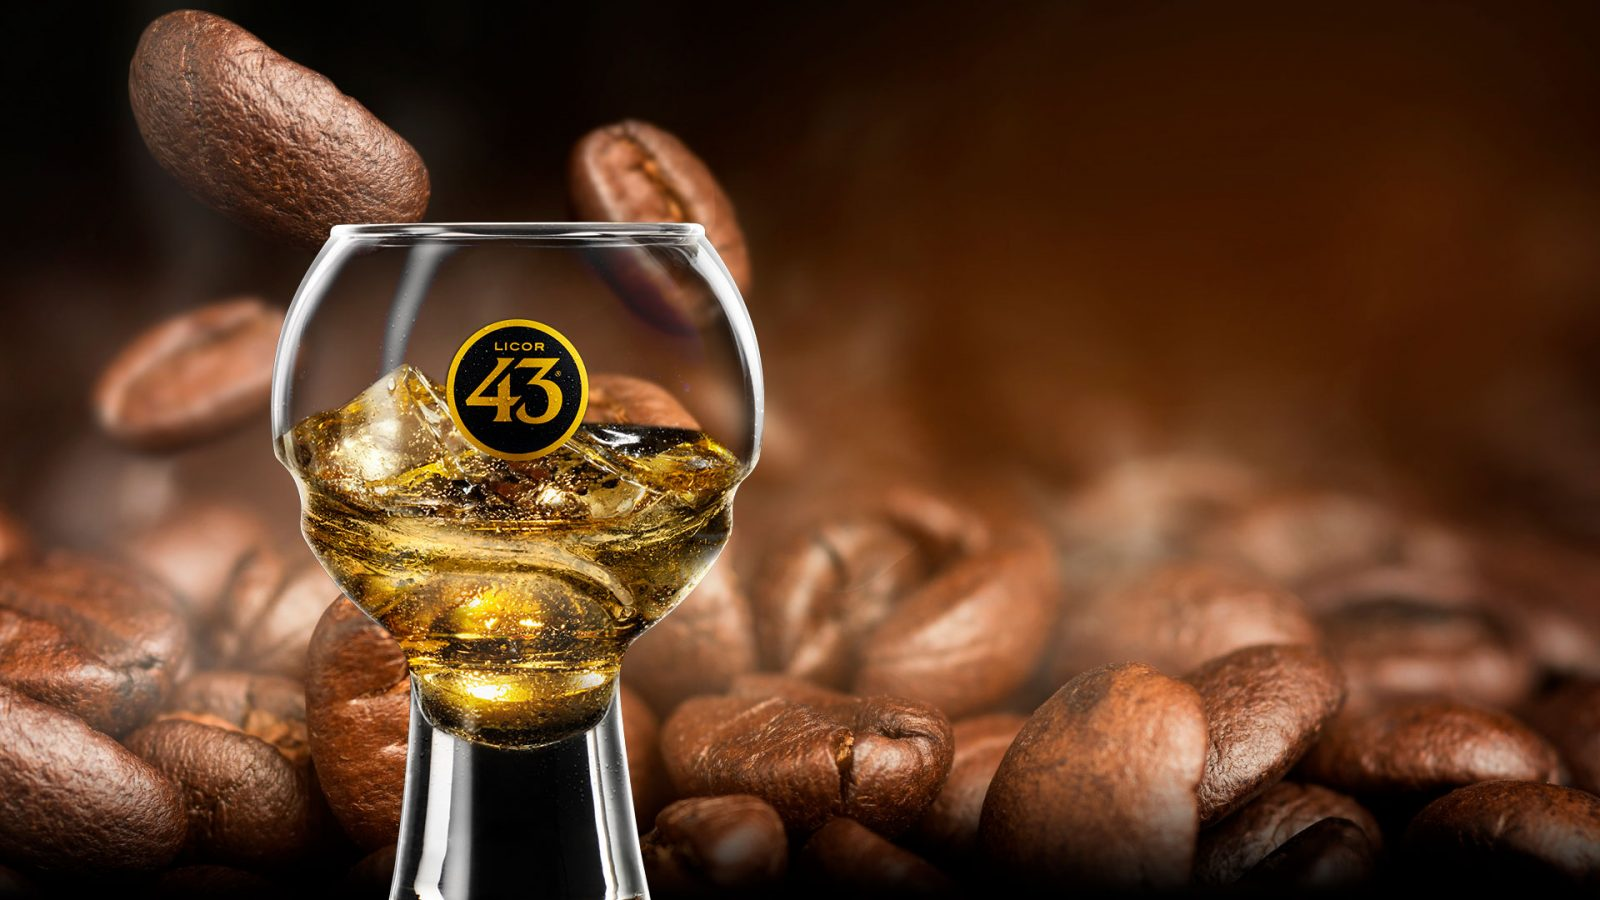 LICOR 43 & COFFEE. THE PERFECT MATCH.